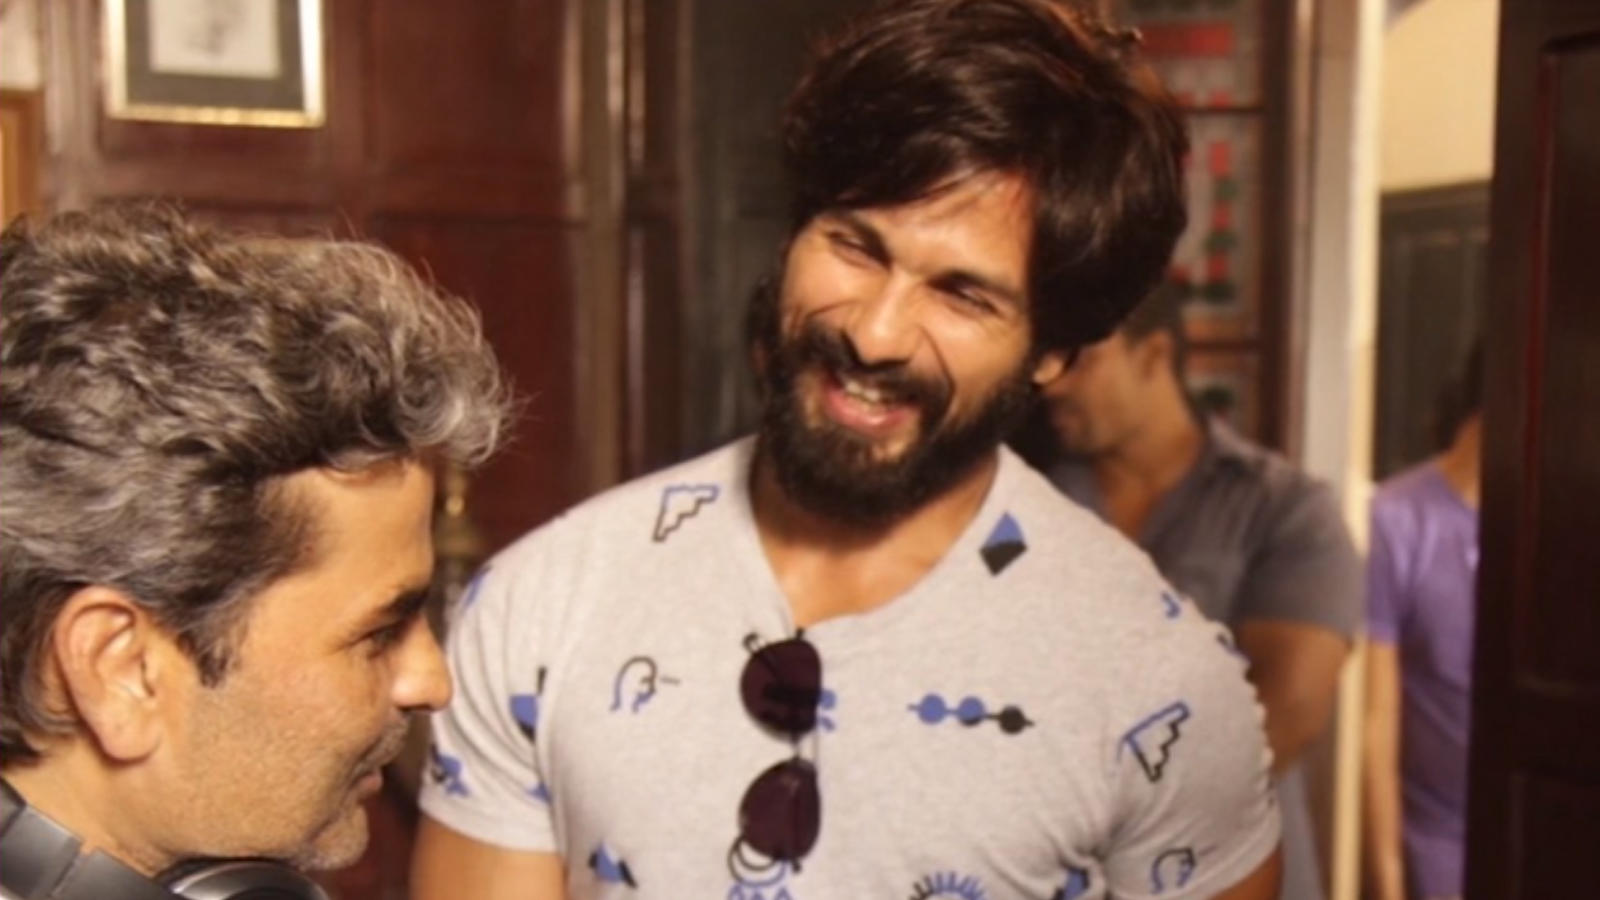 shahid-kapoor-and-vishal-bhardwaj-to-team-up-for-their-fourth-film